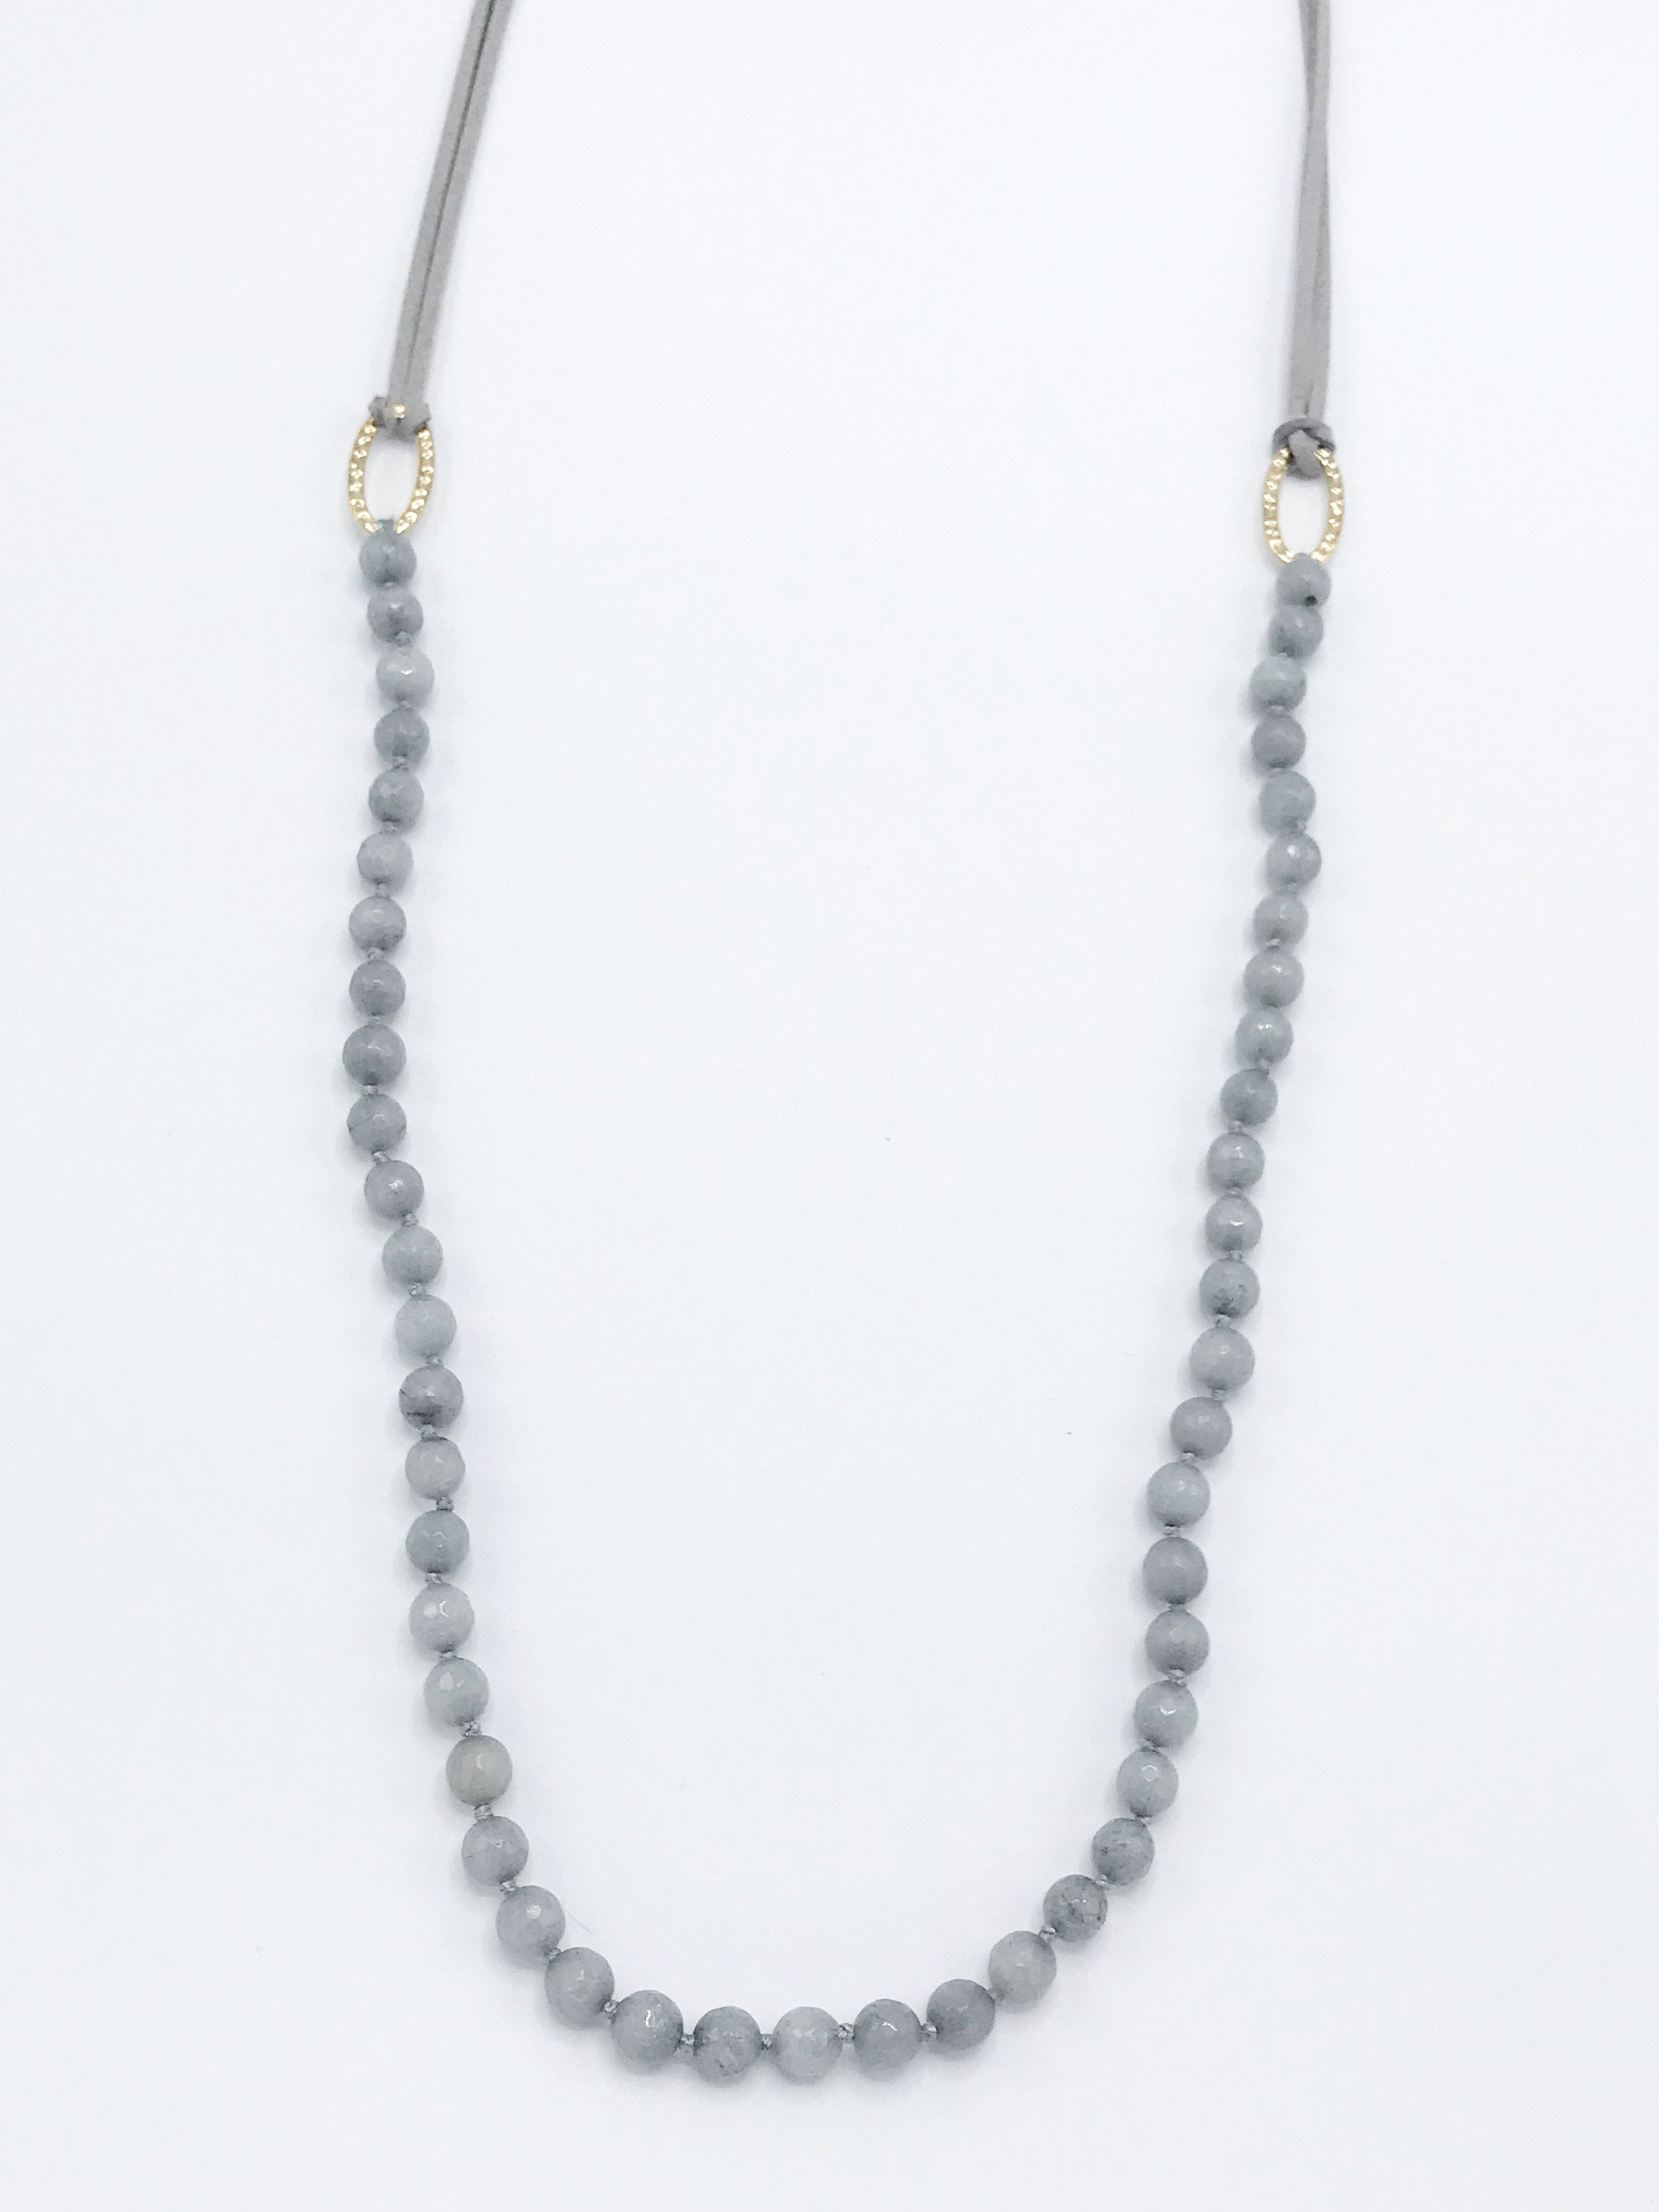 Long Gray Beaded Necklace with Gray Leather and Gold Clasp